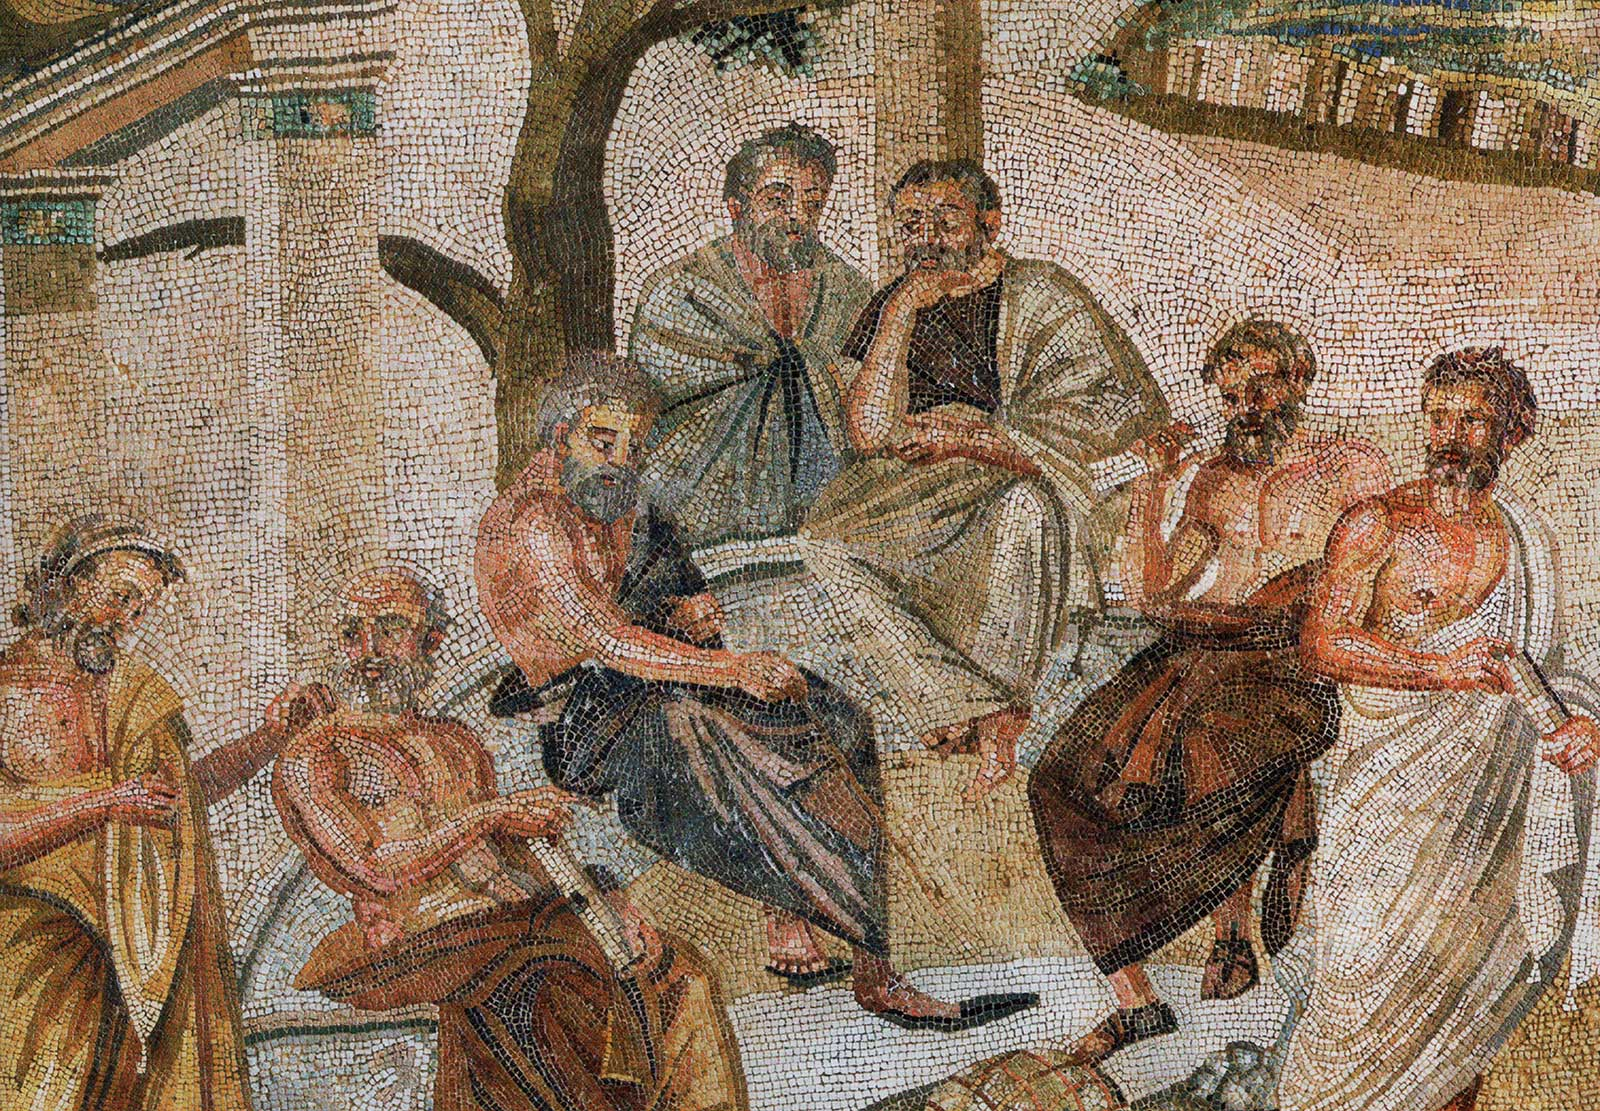 hight resolution of plato holds forth surrounded by four male student philosophers under the shade of trees